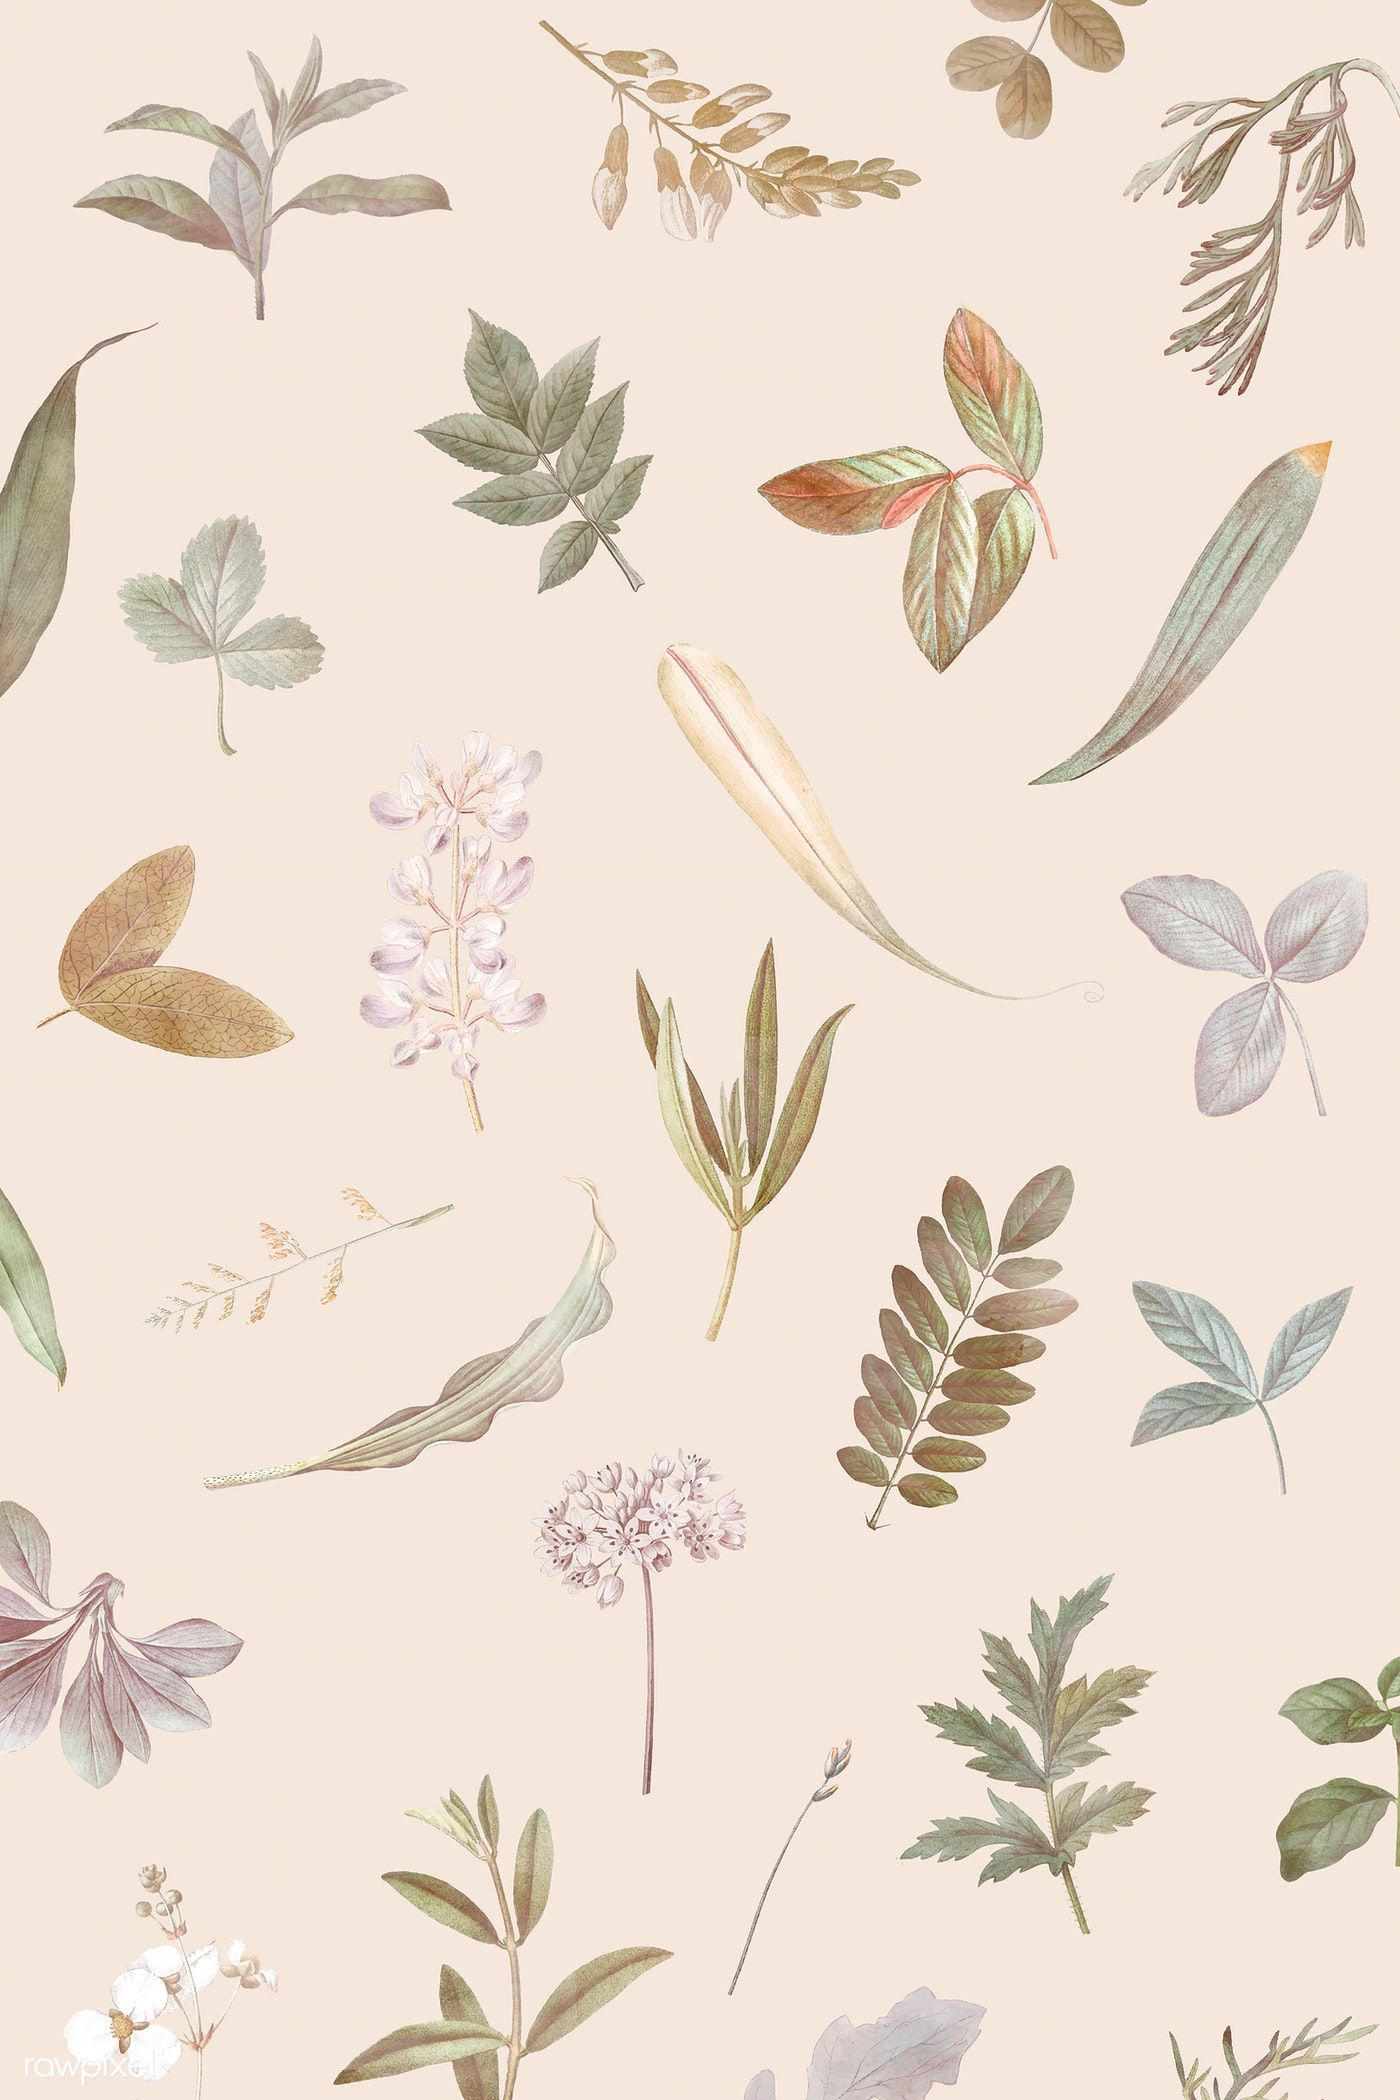 Download premium vector of Foliage pattern on beige background vector